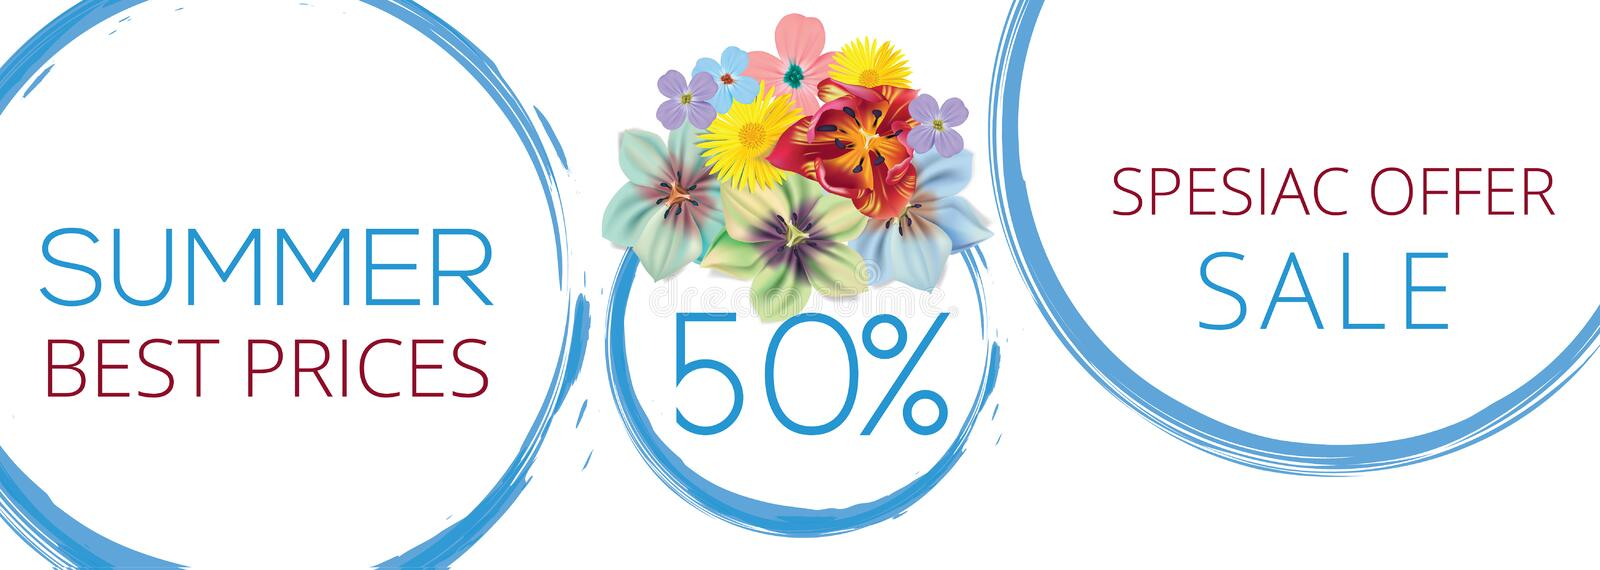 Summer sale Flower banner with text on white background with beautiful flowers. Artistic design vector banners, greeting stock illustration